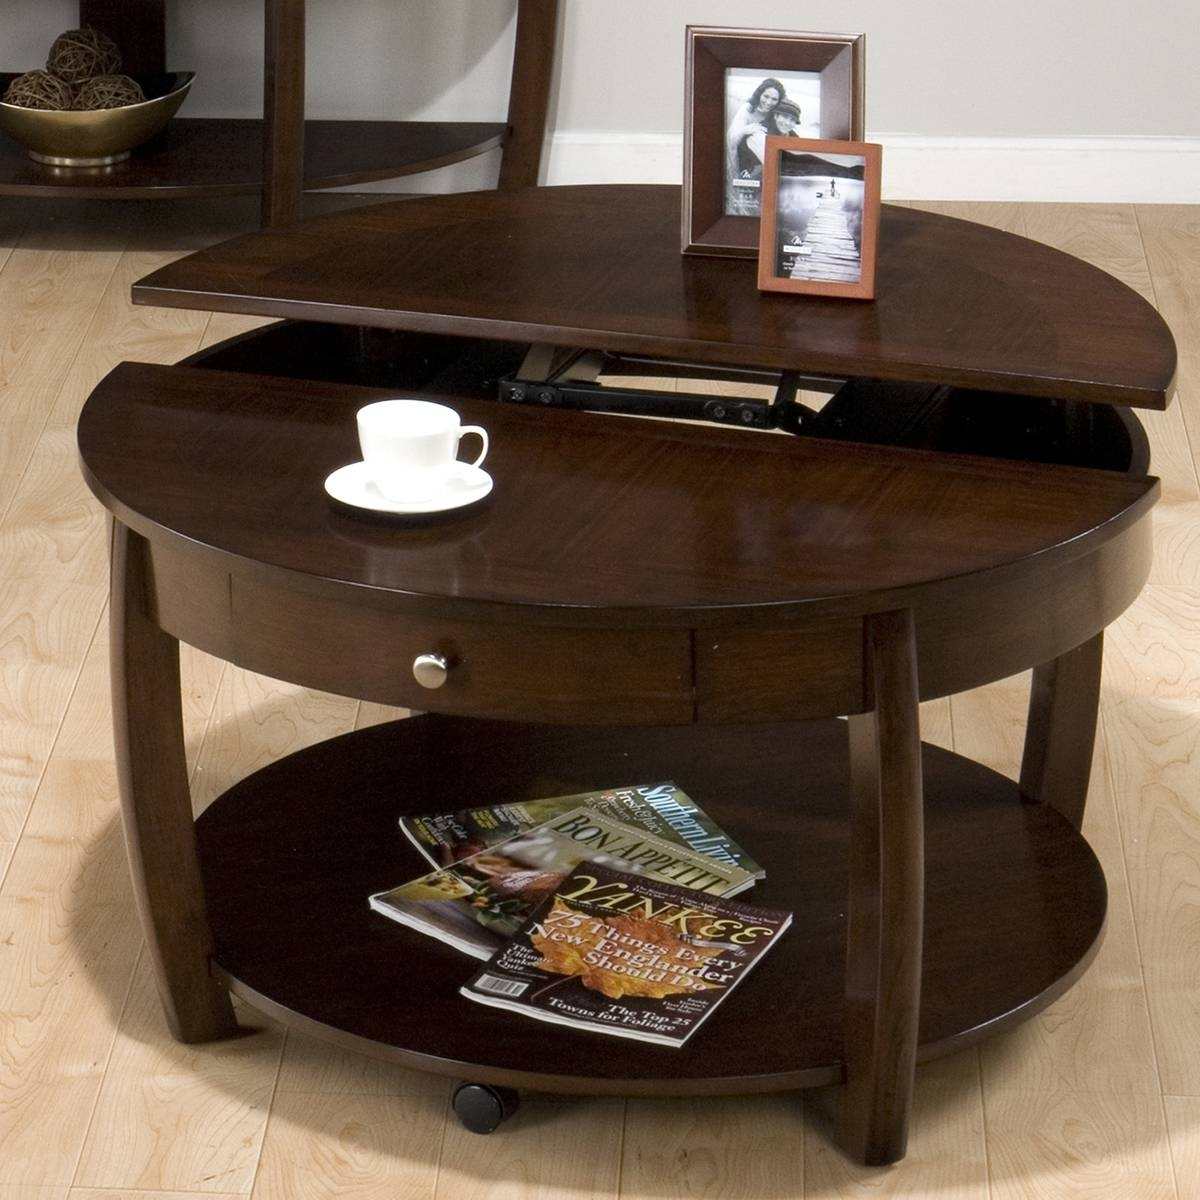 Round Lift Top Coffee Table With Ottomans | Coffee Tables Decoration inside Round Coffee Tables (Image 27 of 30)